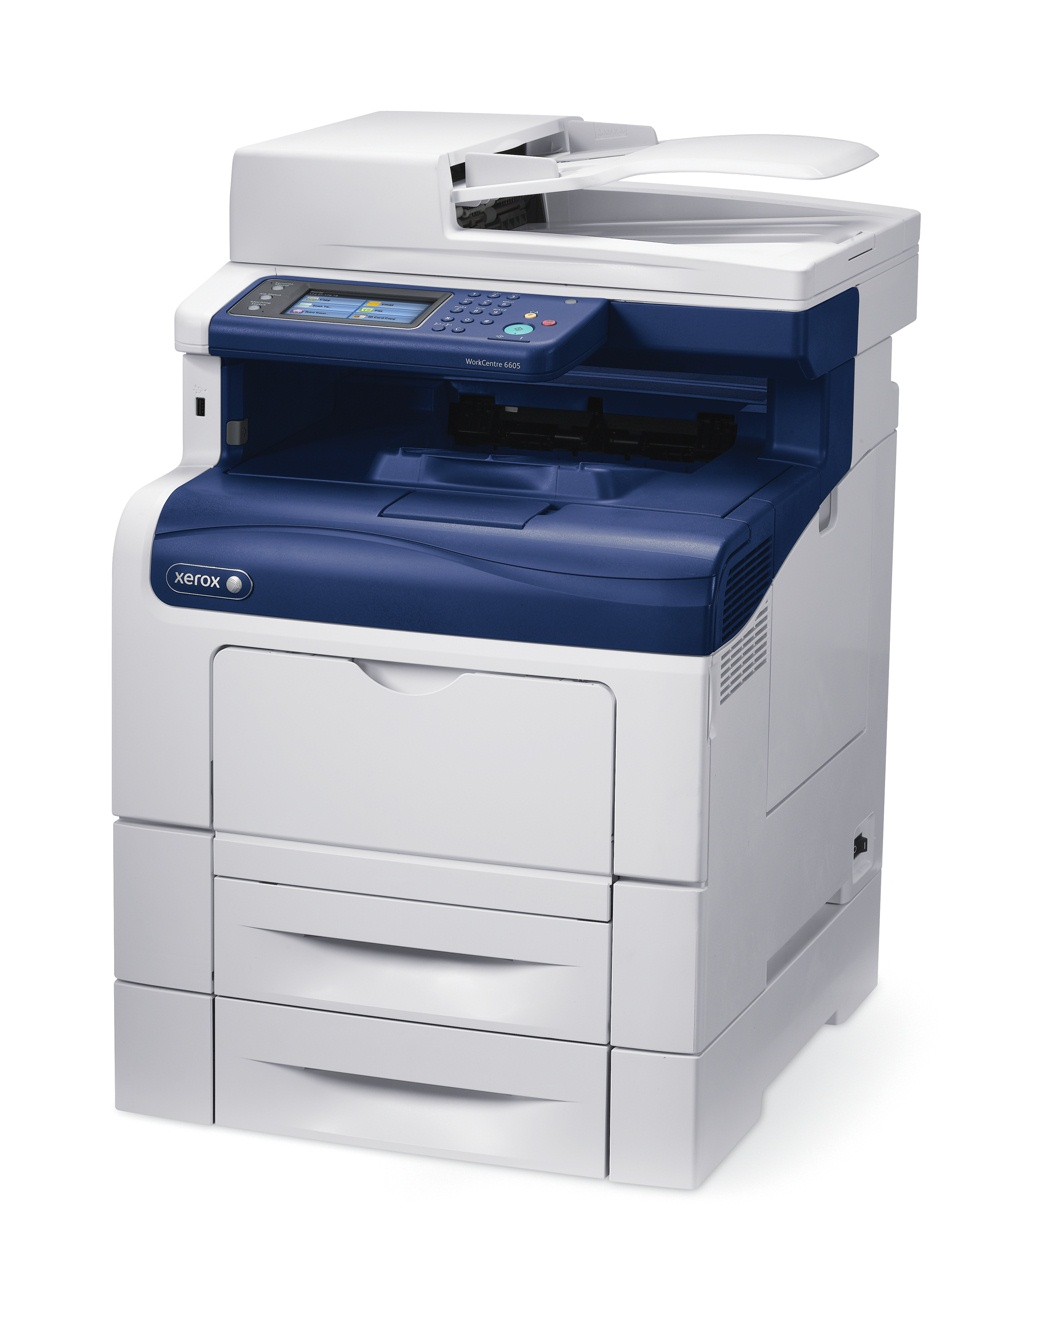 Xerox workcentre 6605dn details the